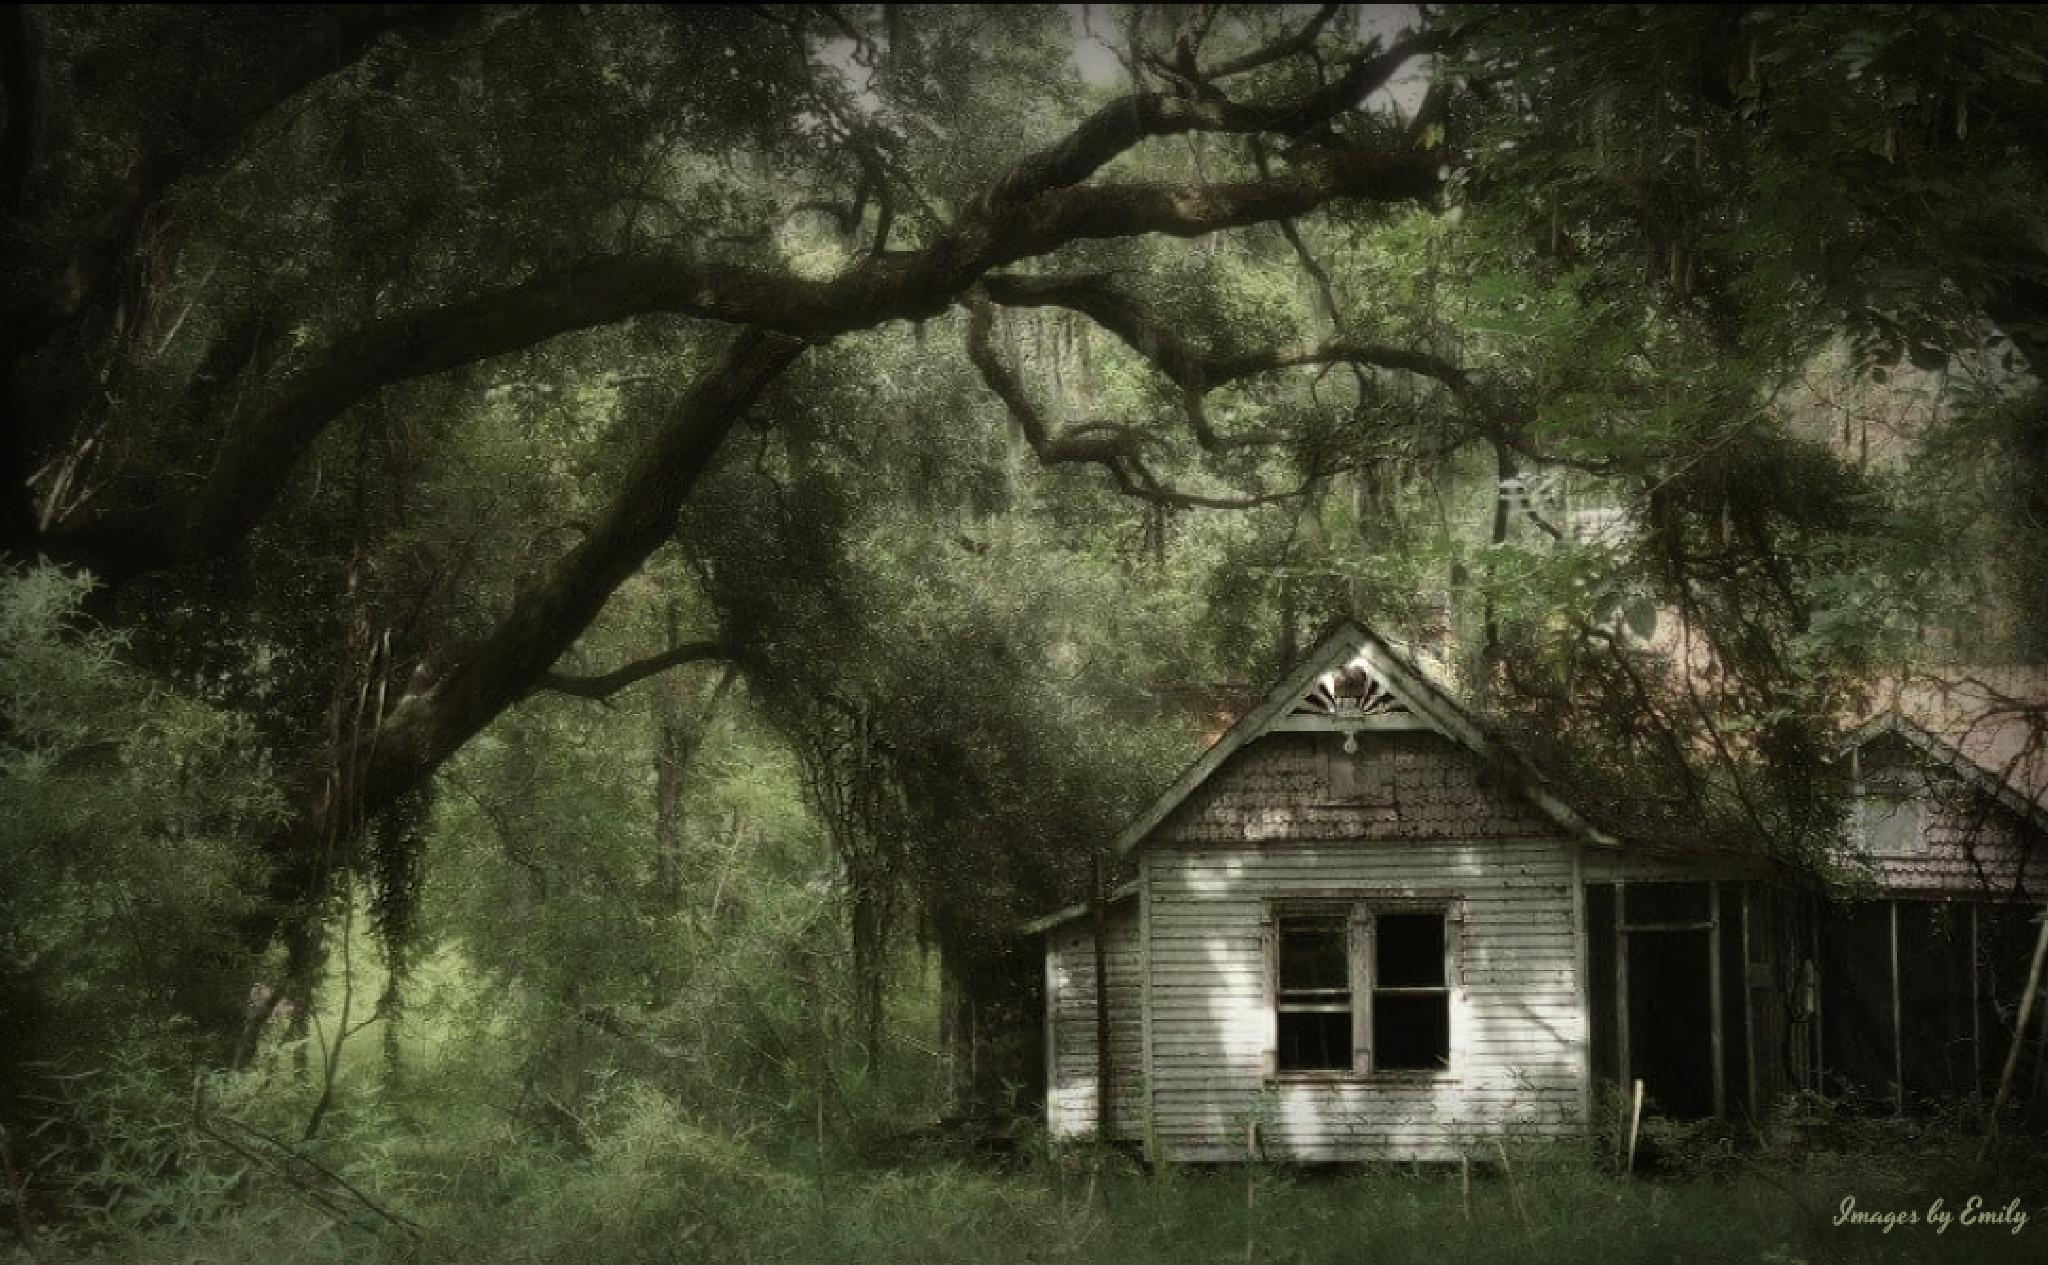 Abandon House by Emily Grant